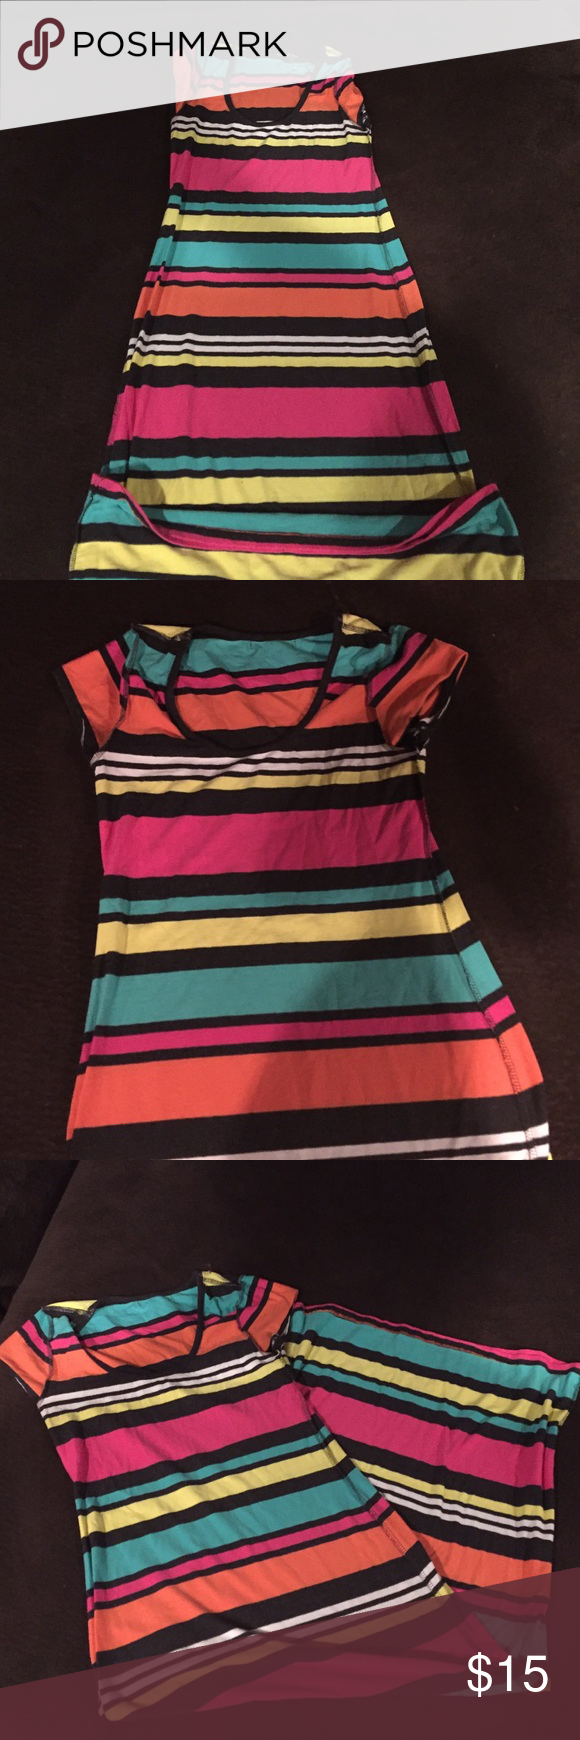 Maxi dress long maxi dress comes to my shin size large great for